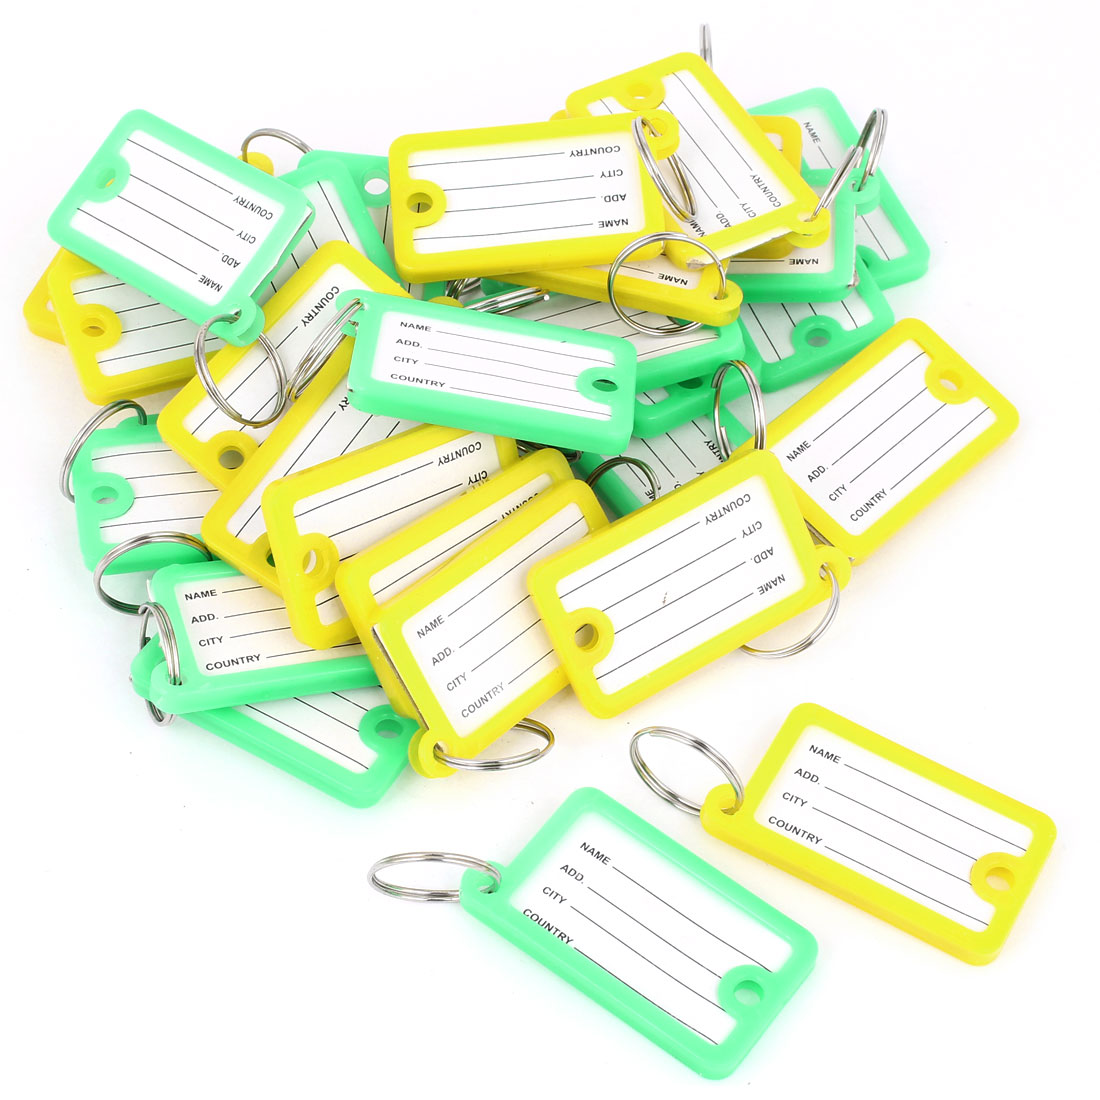 30 Pcs Plastic 45mm x 25mm Key Room ID Tag Name Label Keyring Green Yellow